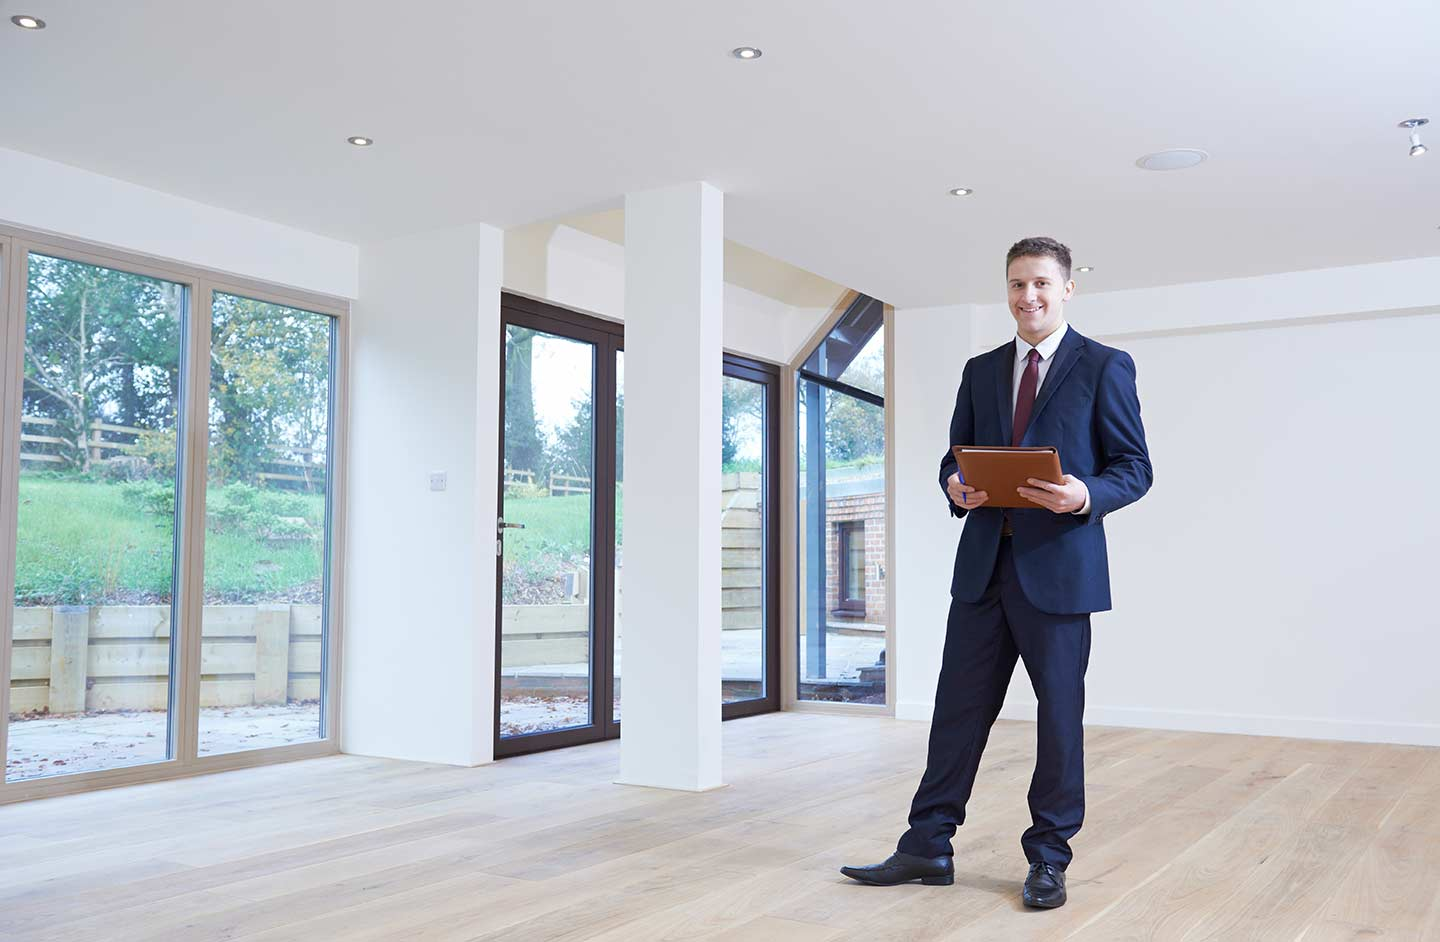 The Upad Landlord: Why are you still paying a letting agent?